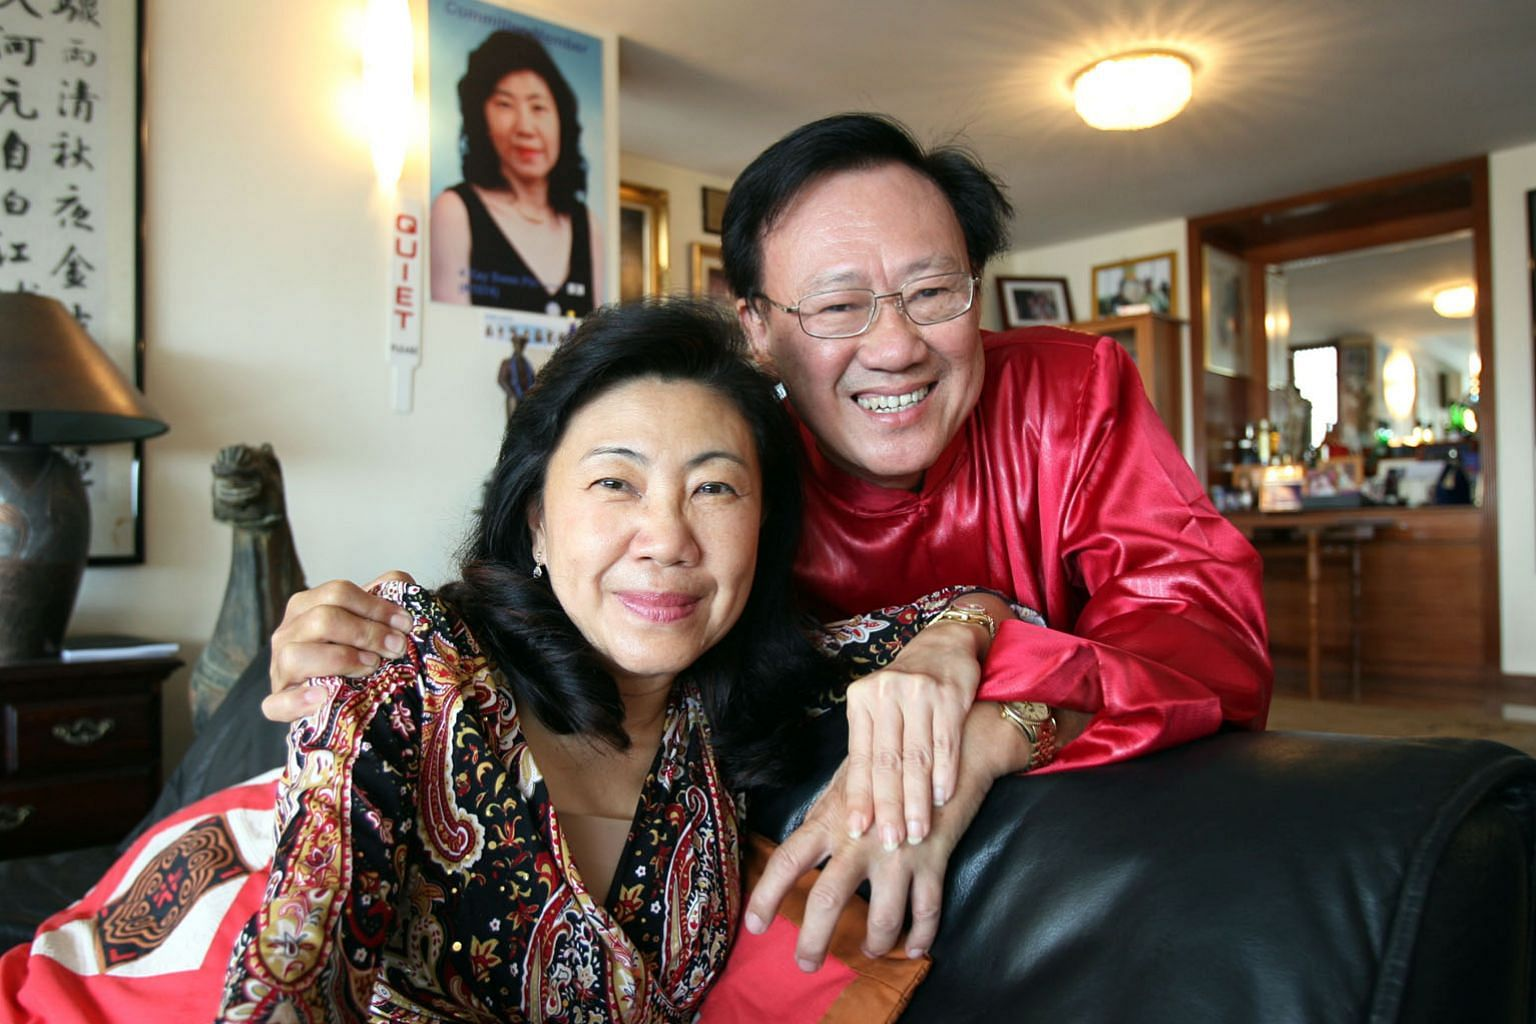 SA Tours managing director Kay Swee Pin and her long-time lover, the travel agency's former boss Ng Kong Yeam in 2008. ST FILE PHOTO